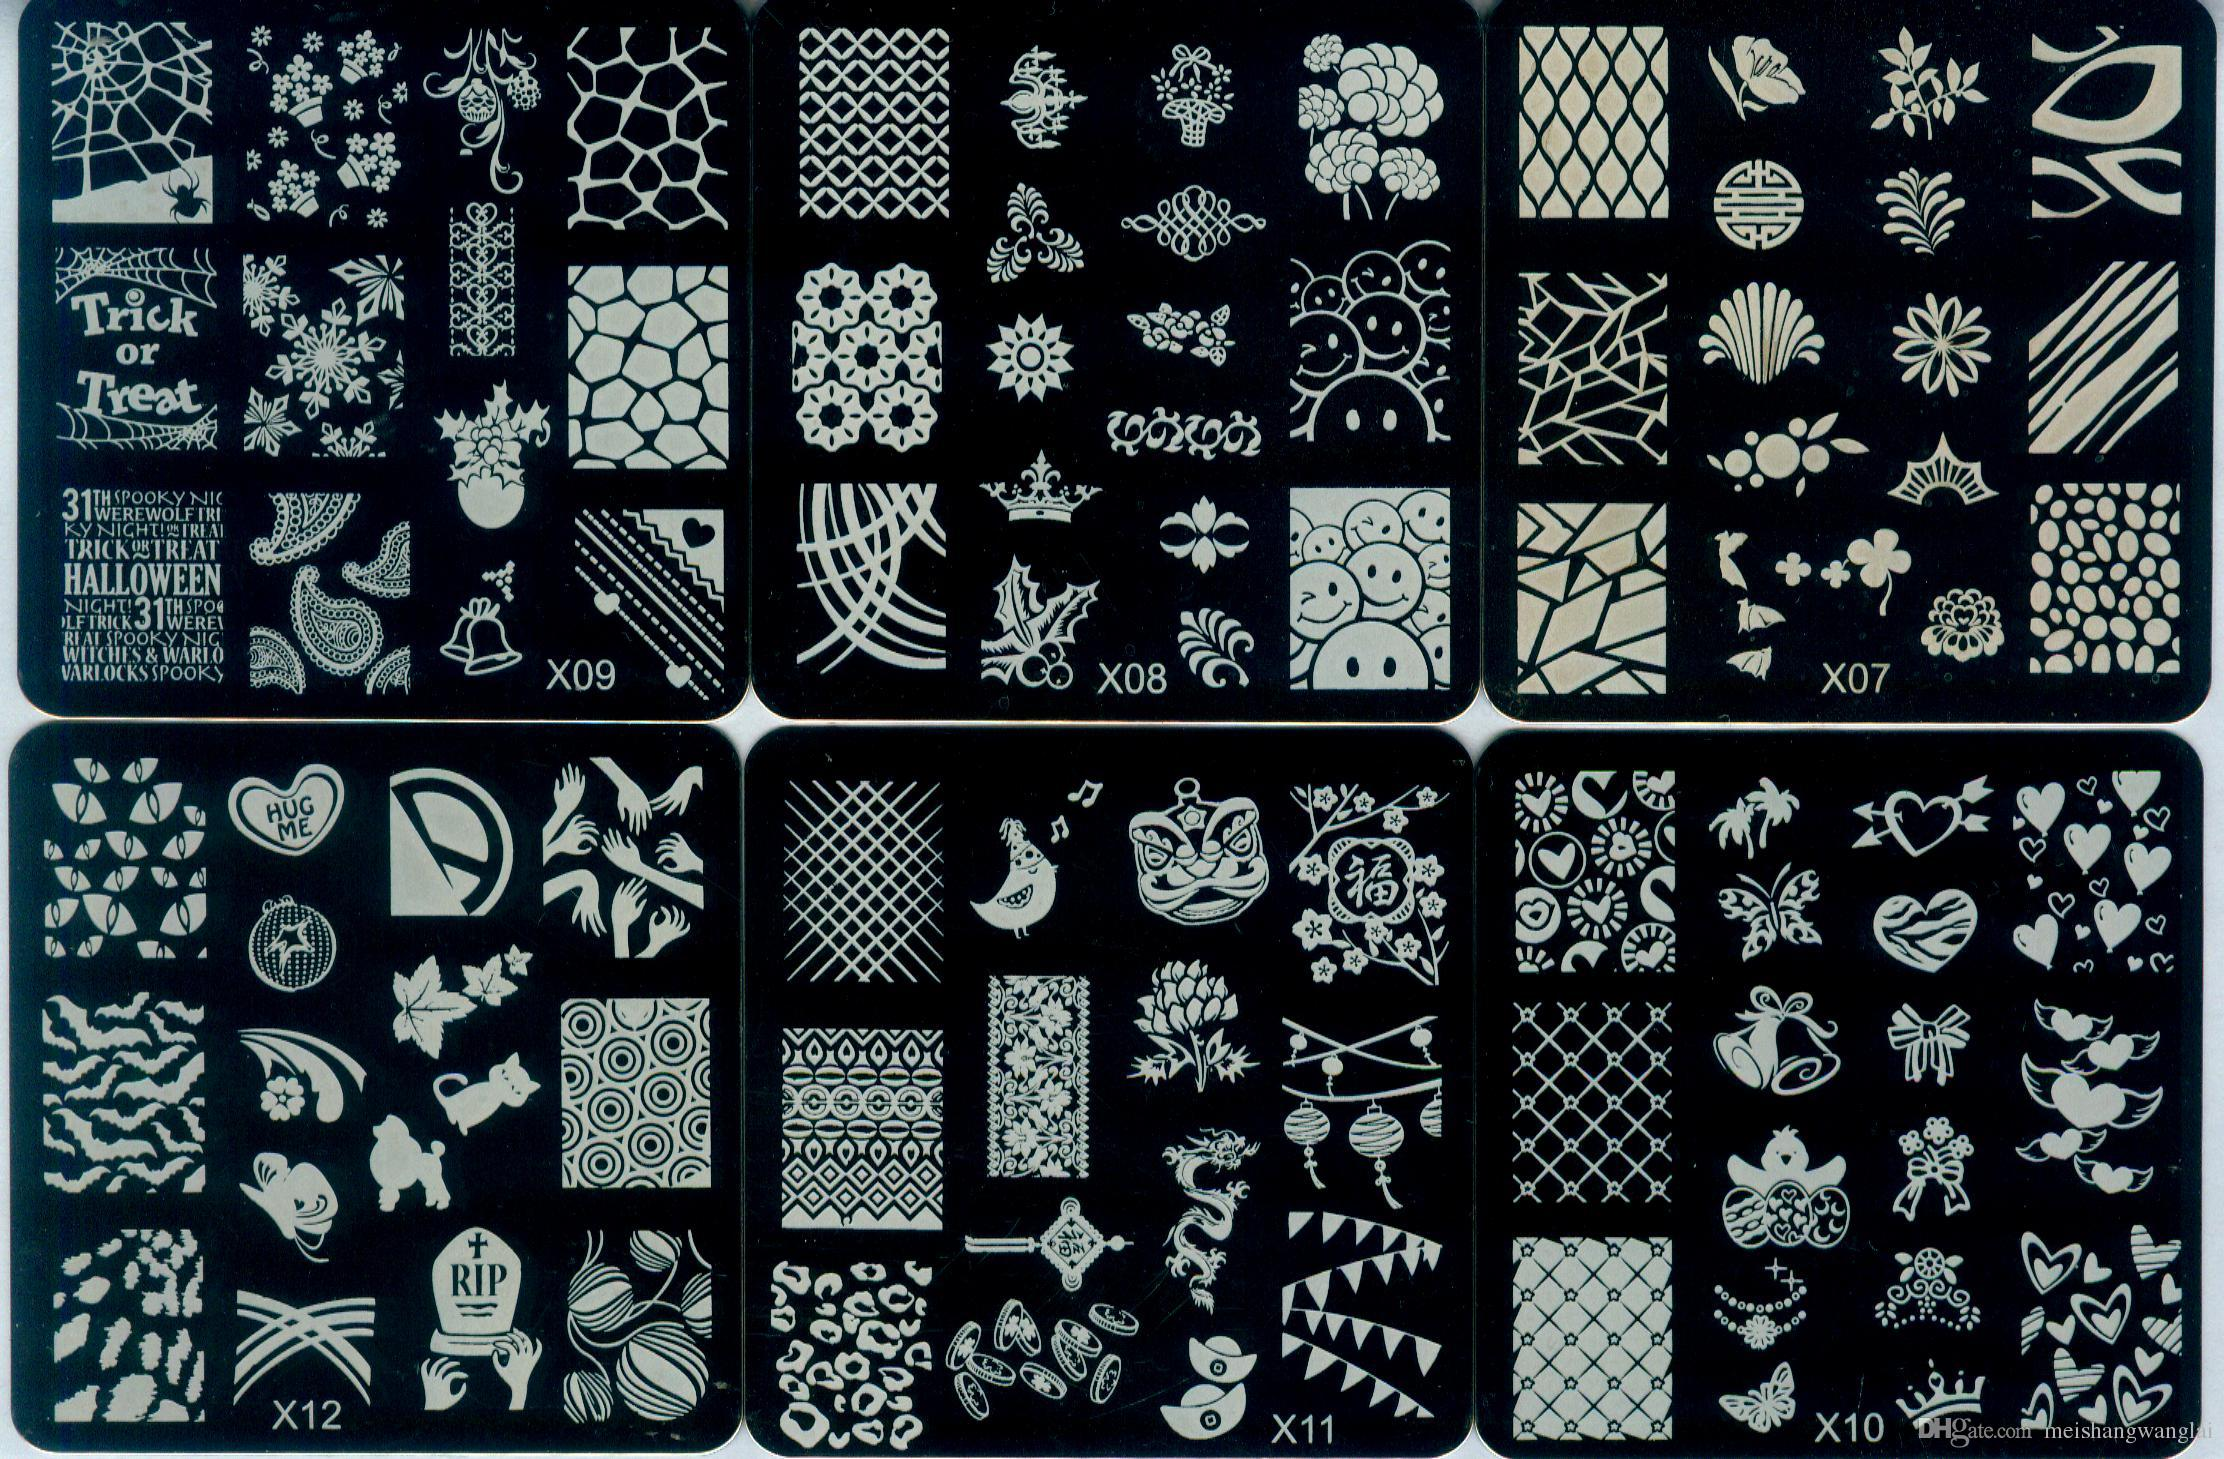 Nail Stamping Plates Square French Design / 24 Estilos X Nail Stamp Image Template Placas de Acero Inoxidable 62 * 62mm X1-24